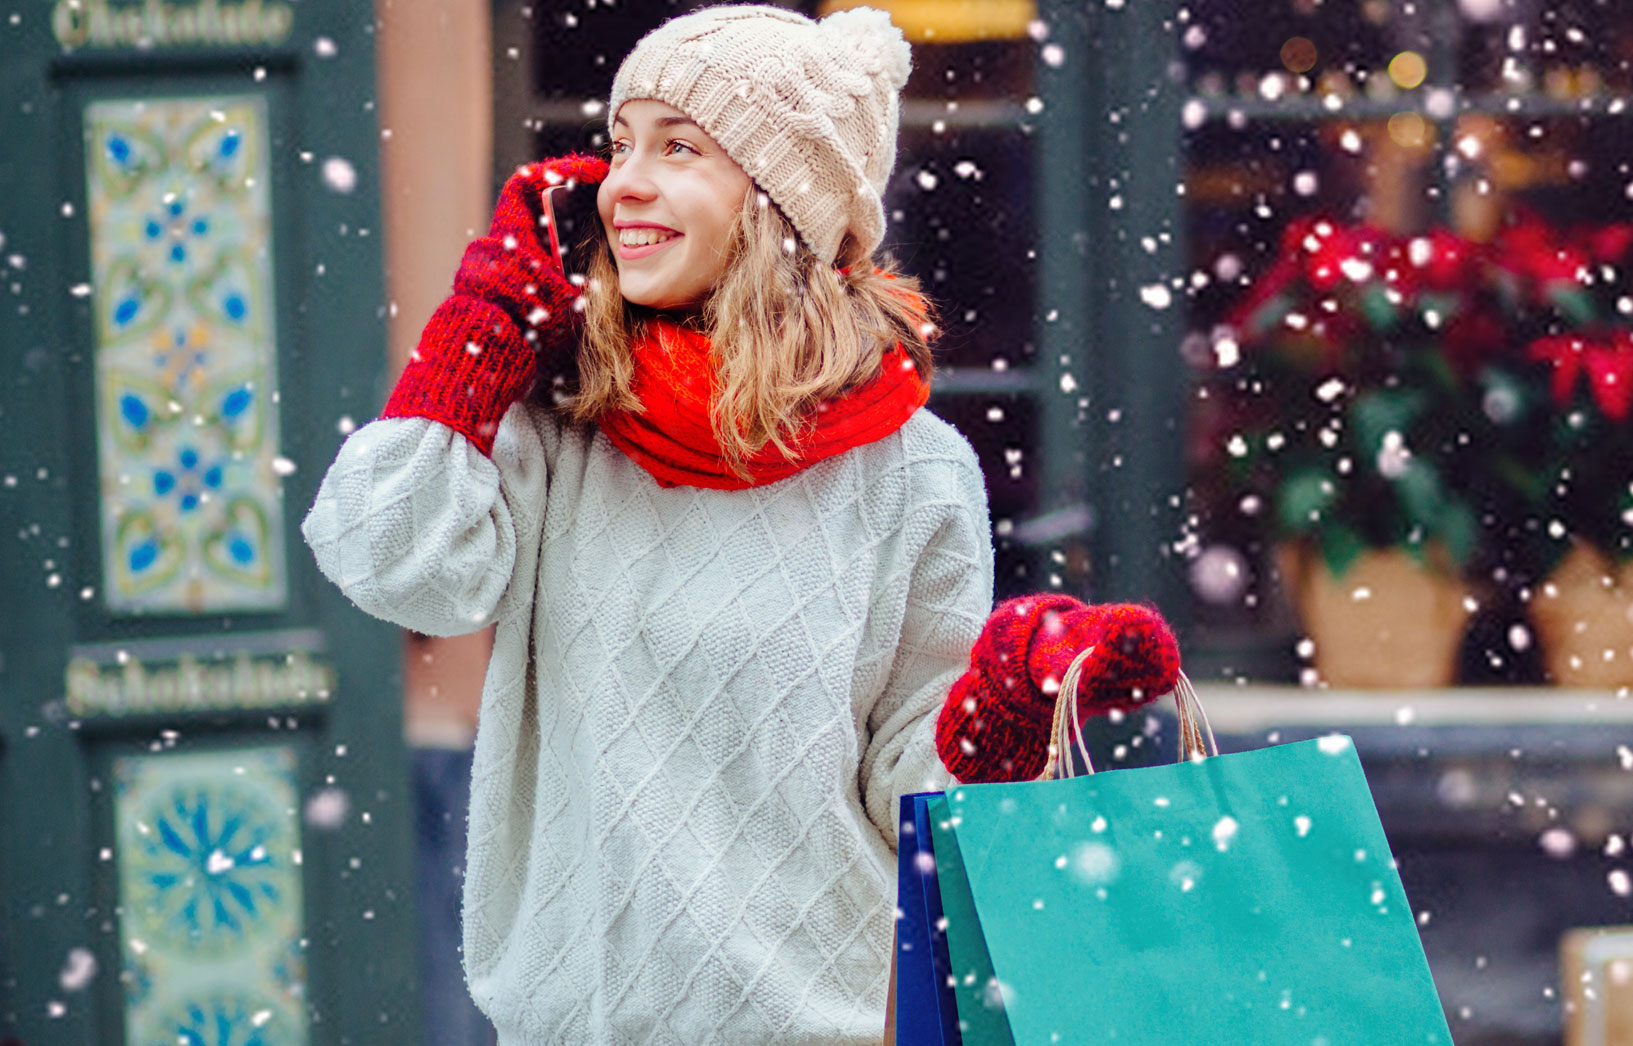 During the holiday madness, brands are often reduced to intense price competition to make the sale. But it's important not to lose sight of the bigger picture: offering value to customers through their experience with your brand.